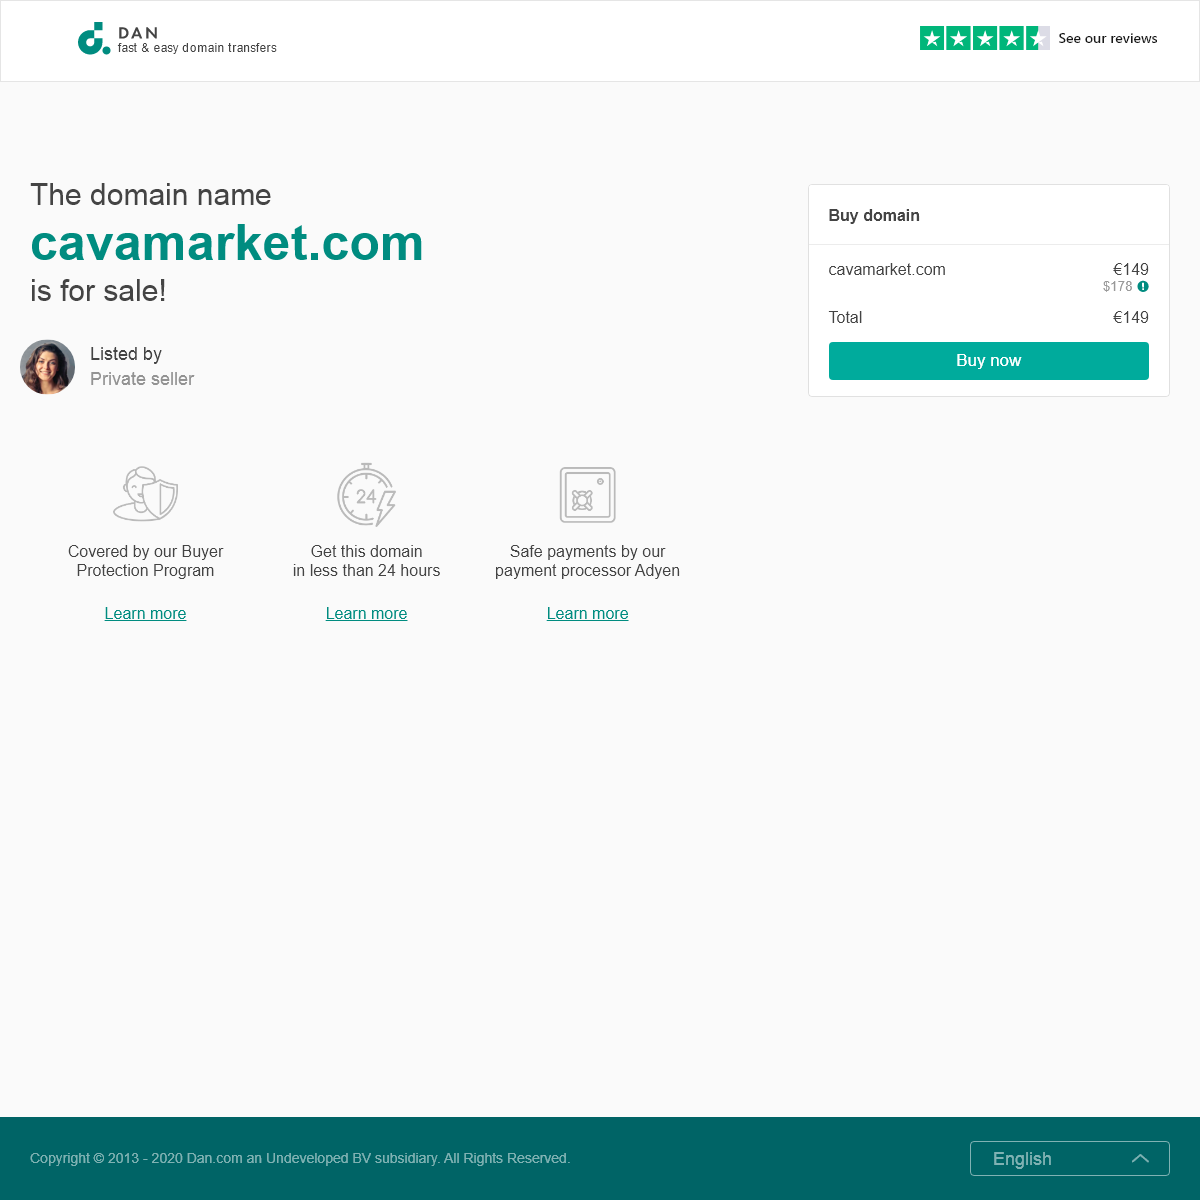 The domain name cavamarket.com is for sale